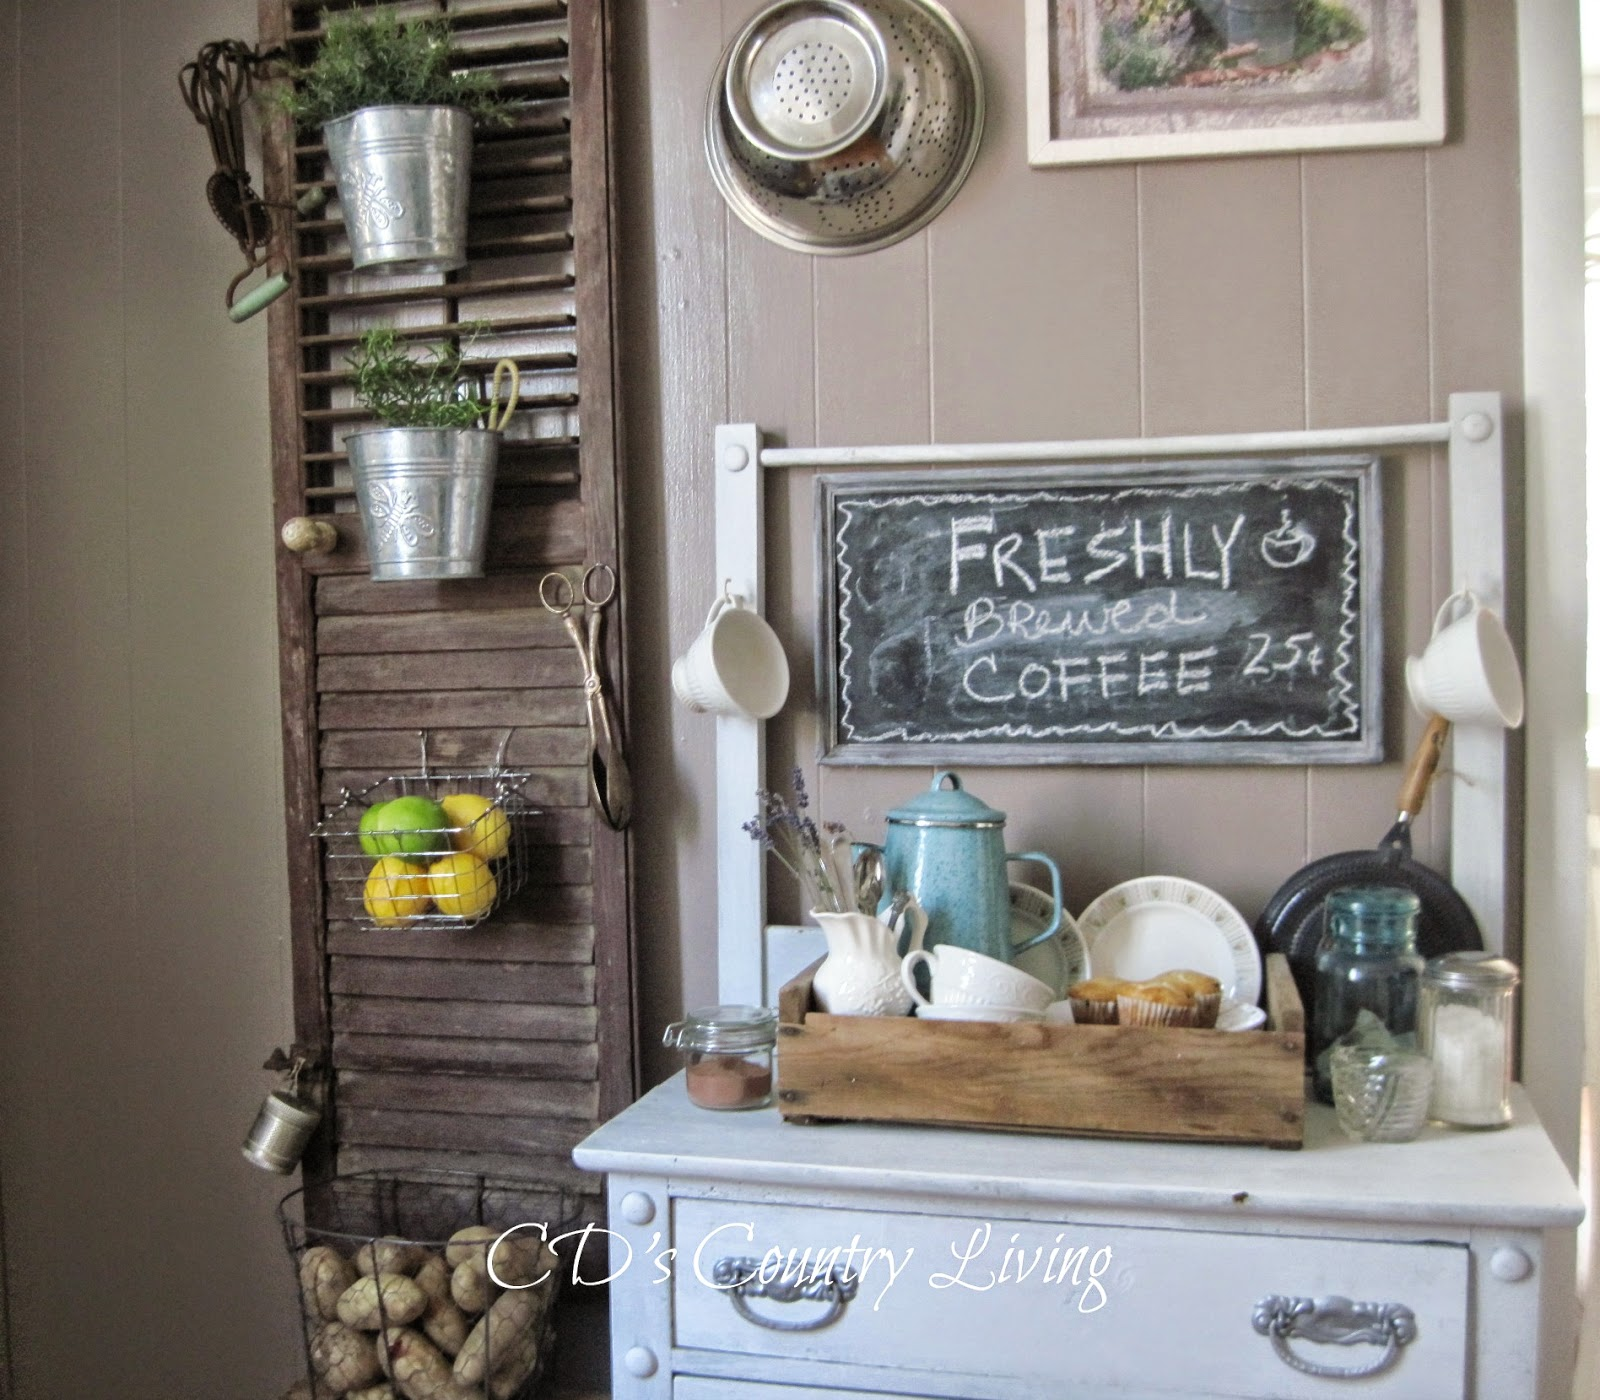 Kitchen Renovation Trends 2015 27 Ideas To Inspire: A Stroll Thru Life: 253rd Inspire Me Tuesday